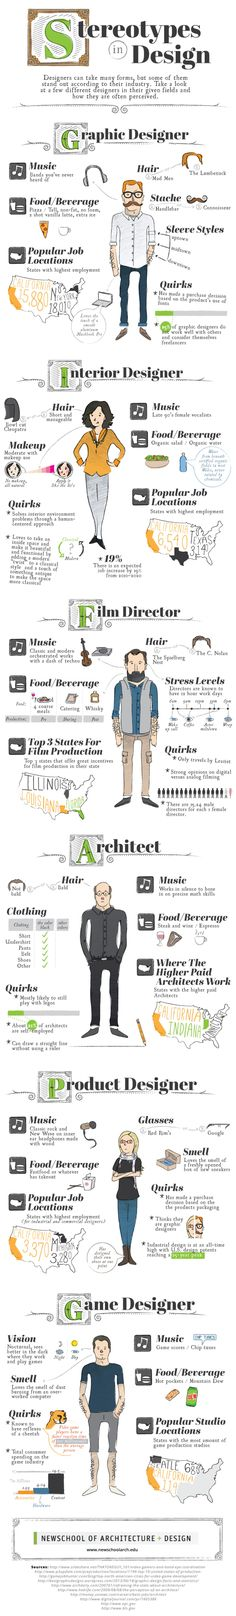 Stereotypes in Designs  Infographic